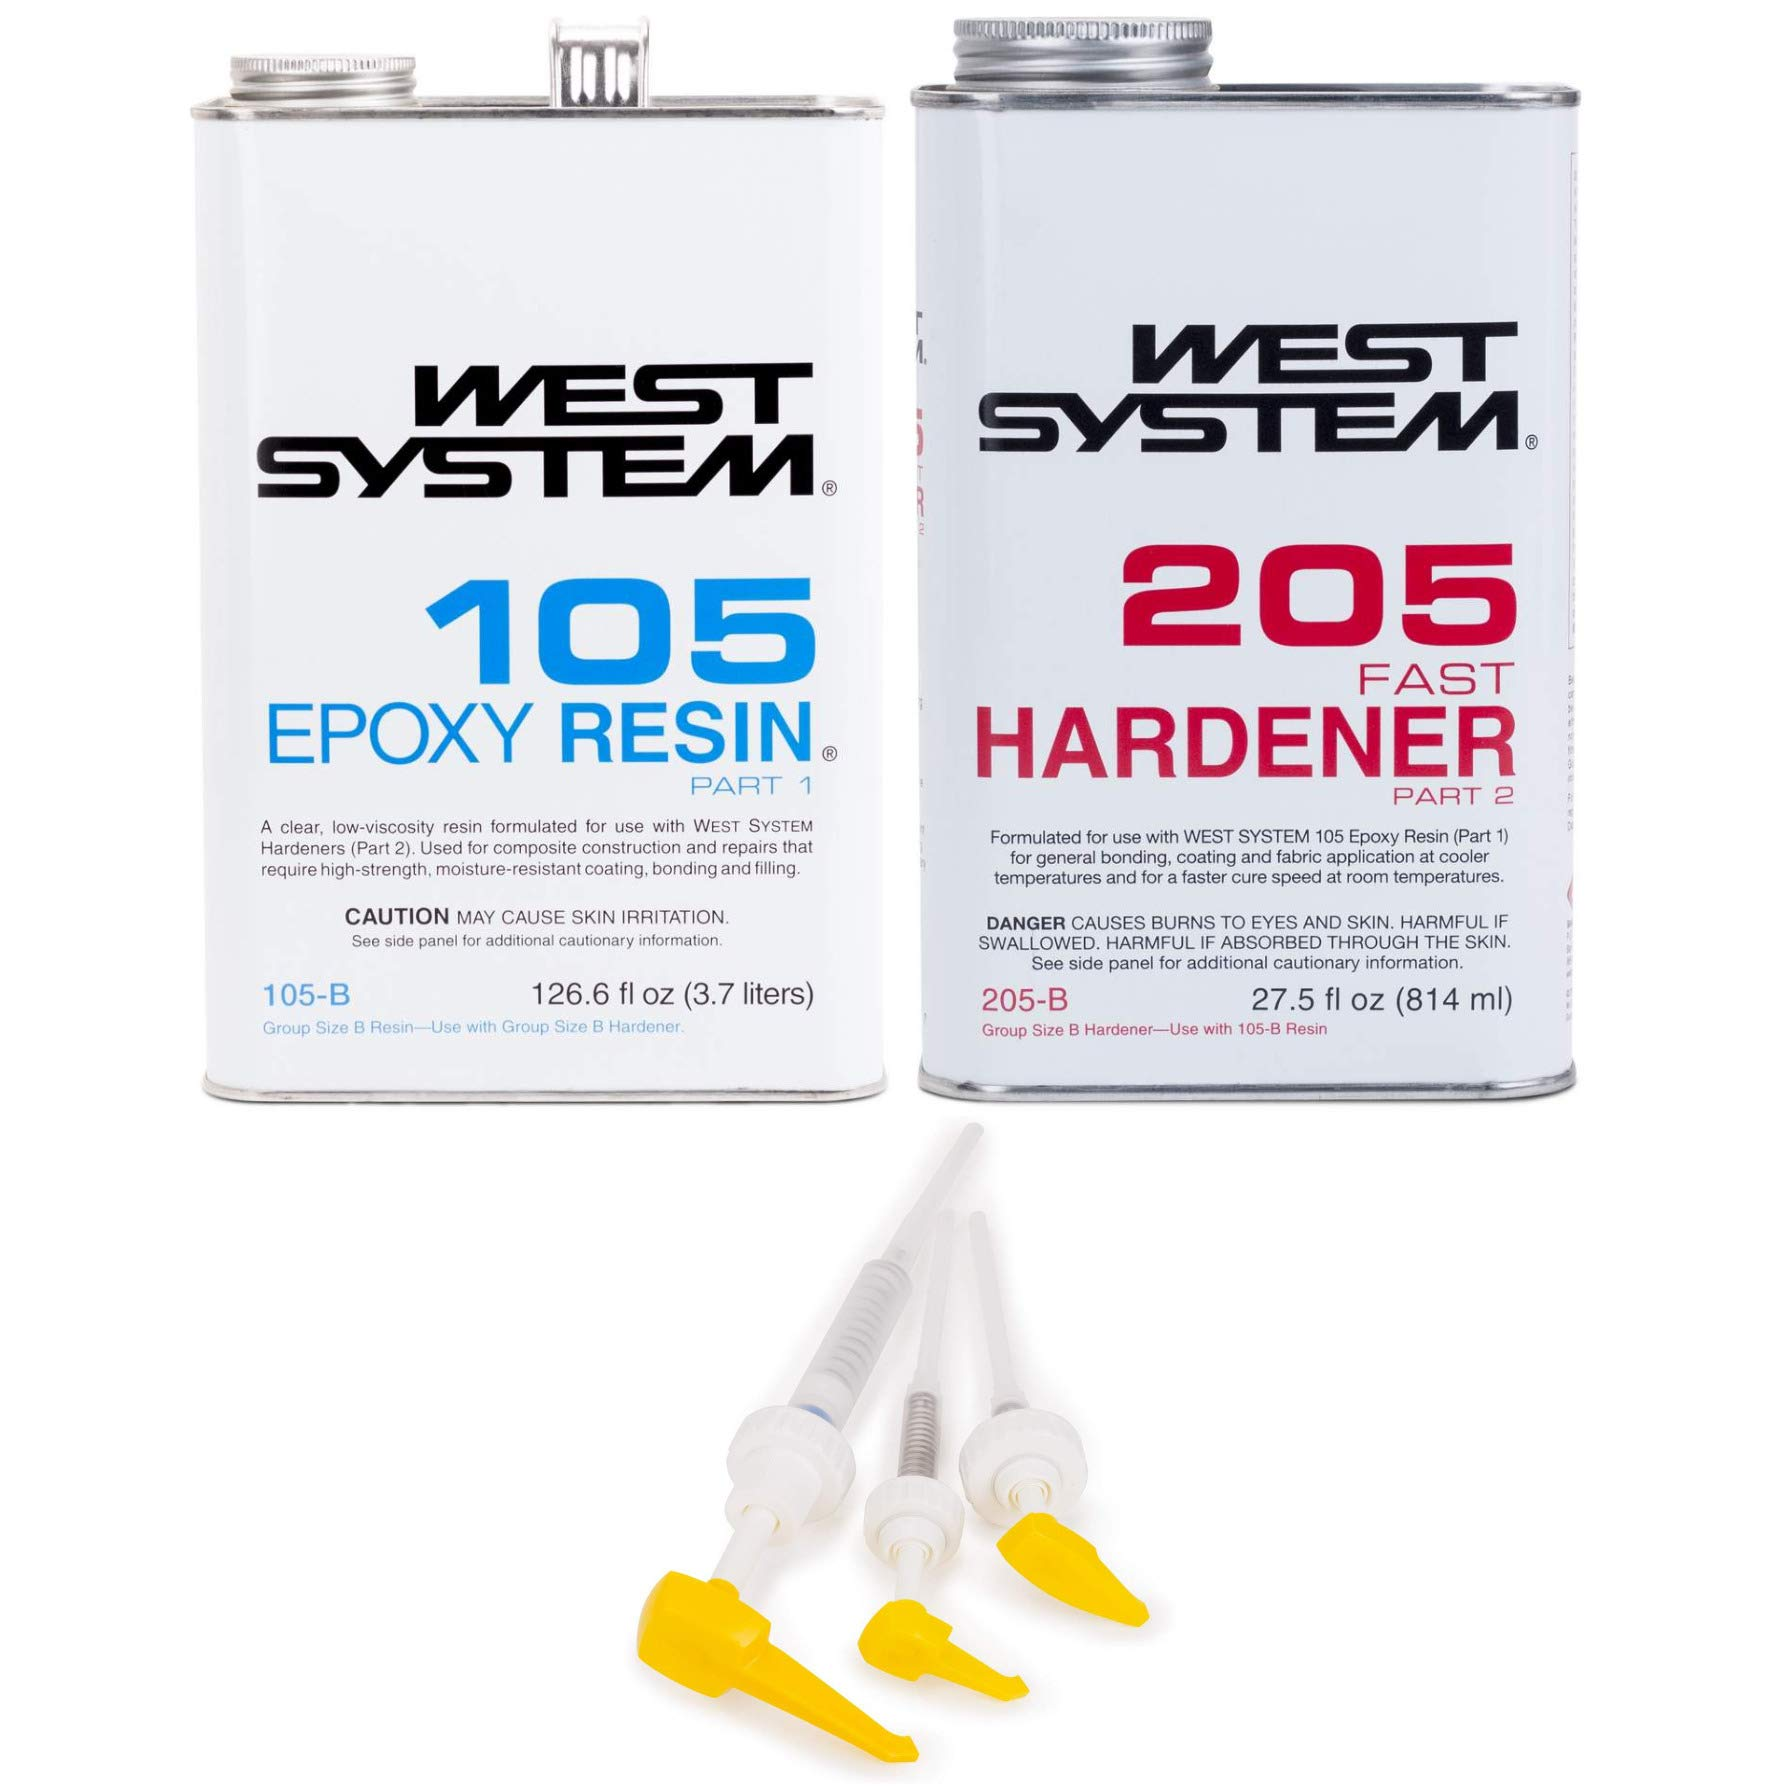 West System 105-B Epoxy Resin (.98 gal) with 205-B Fast Epoxy Hardener (.86 qt) and Mini Epoxy Metering Pump Set (1) by WEST SYSTEM